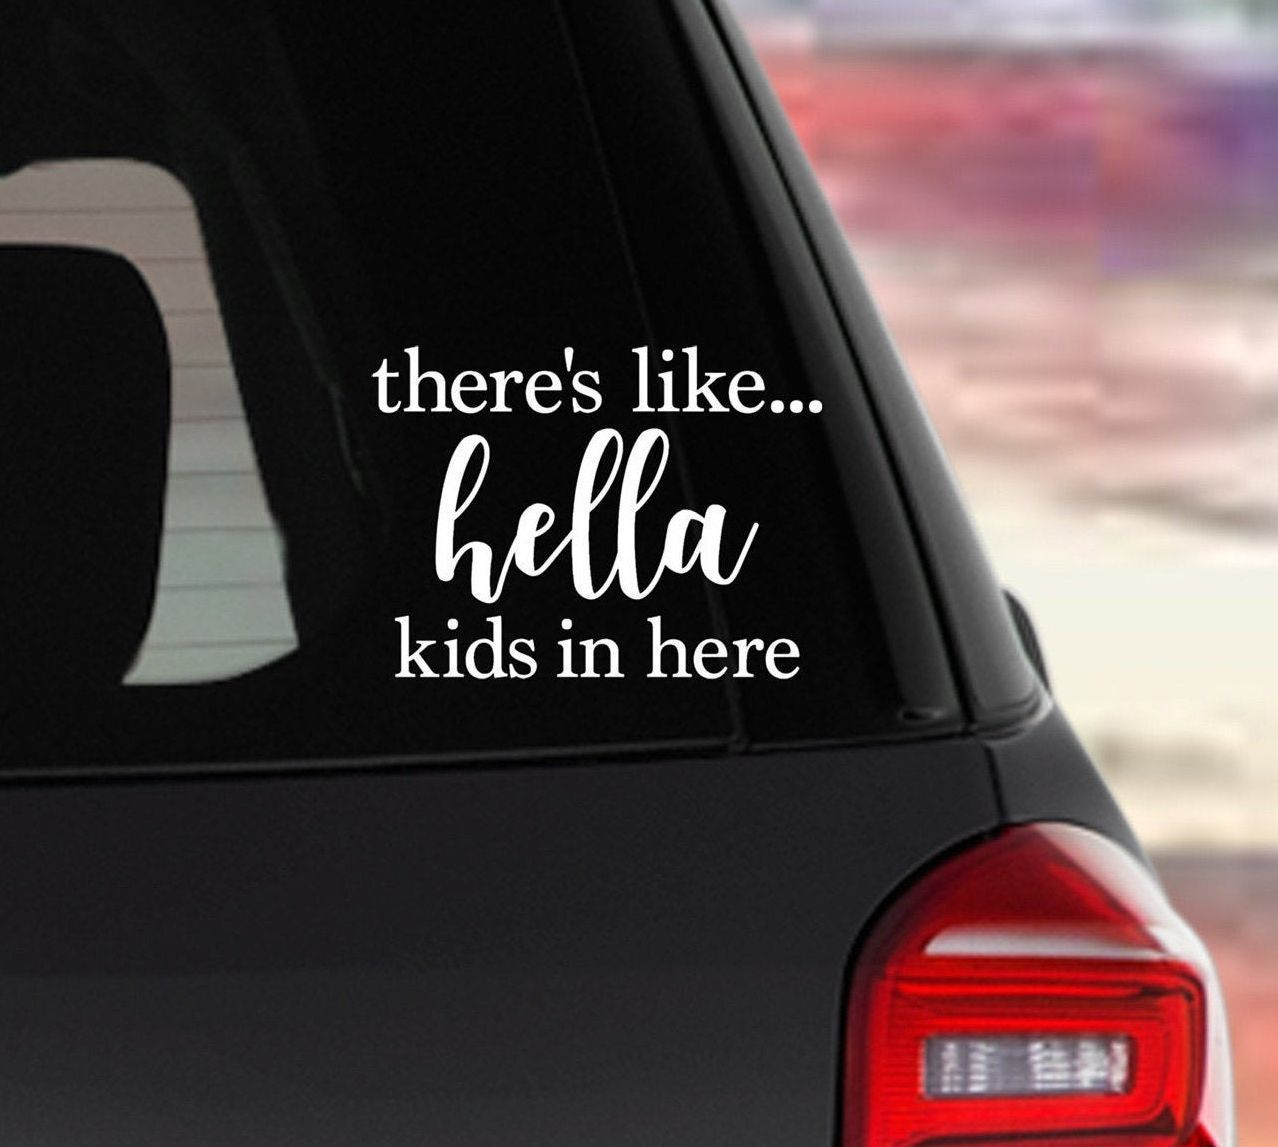 There S Like Hella Kids In Here Cussing Mom Car Accessories Car Decals Car Stickers Mom Car Sticker Design Funny Bumper Stickers Bumper Stickers [ 1147 x 1278 Pixel ]